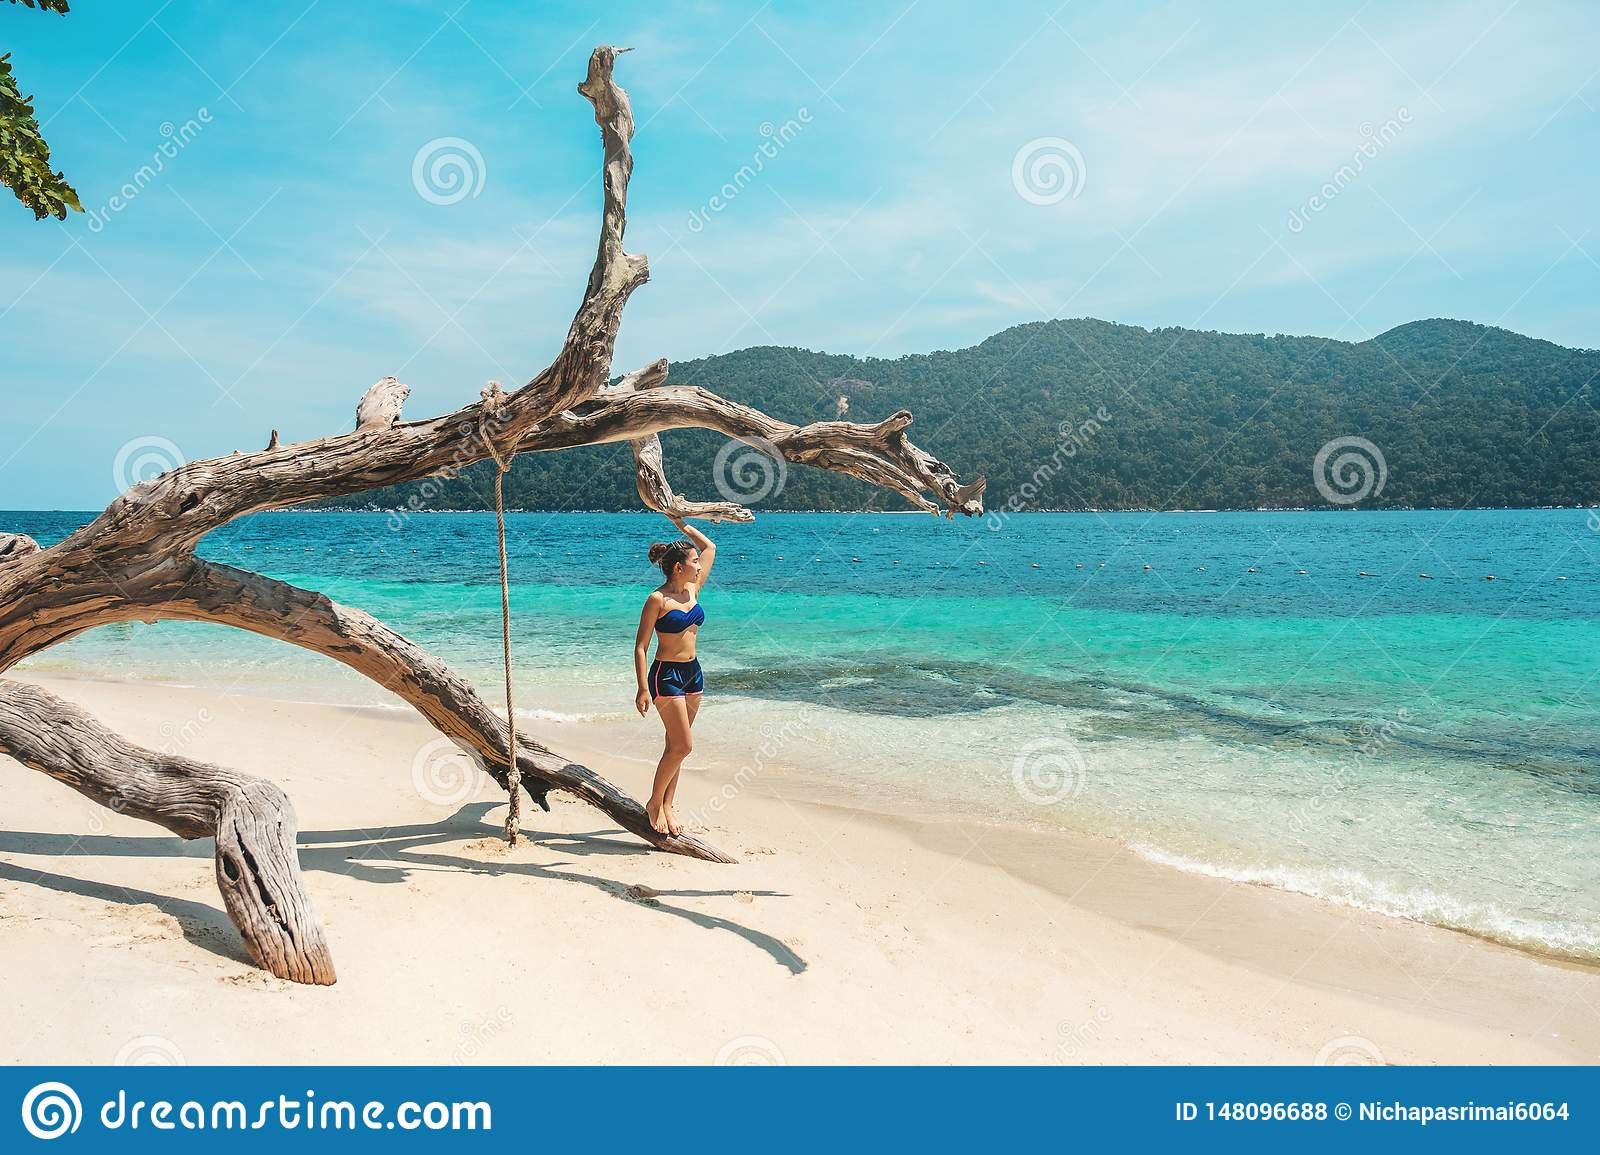 Asian women relaxing in summer holiday on beach